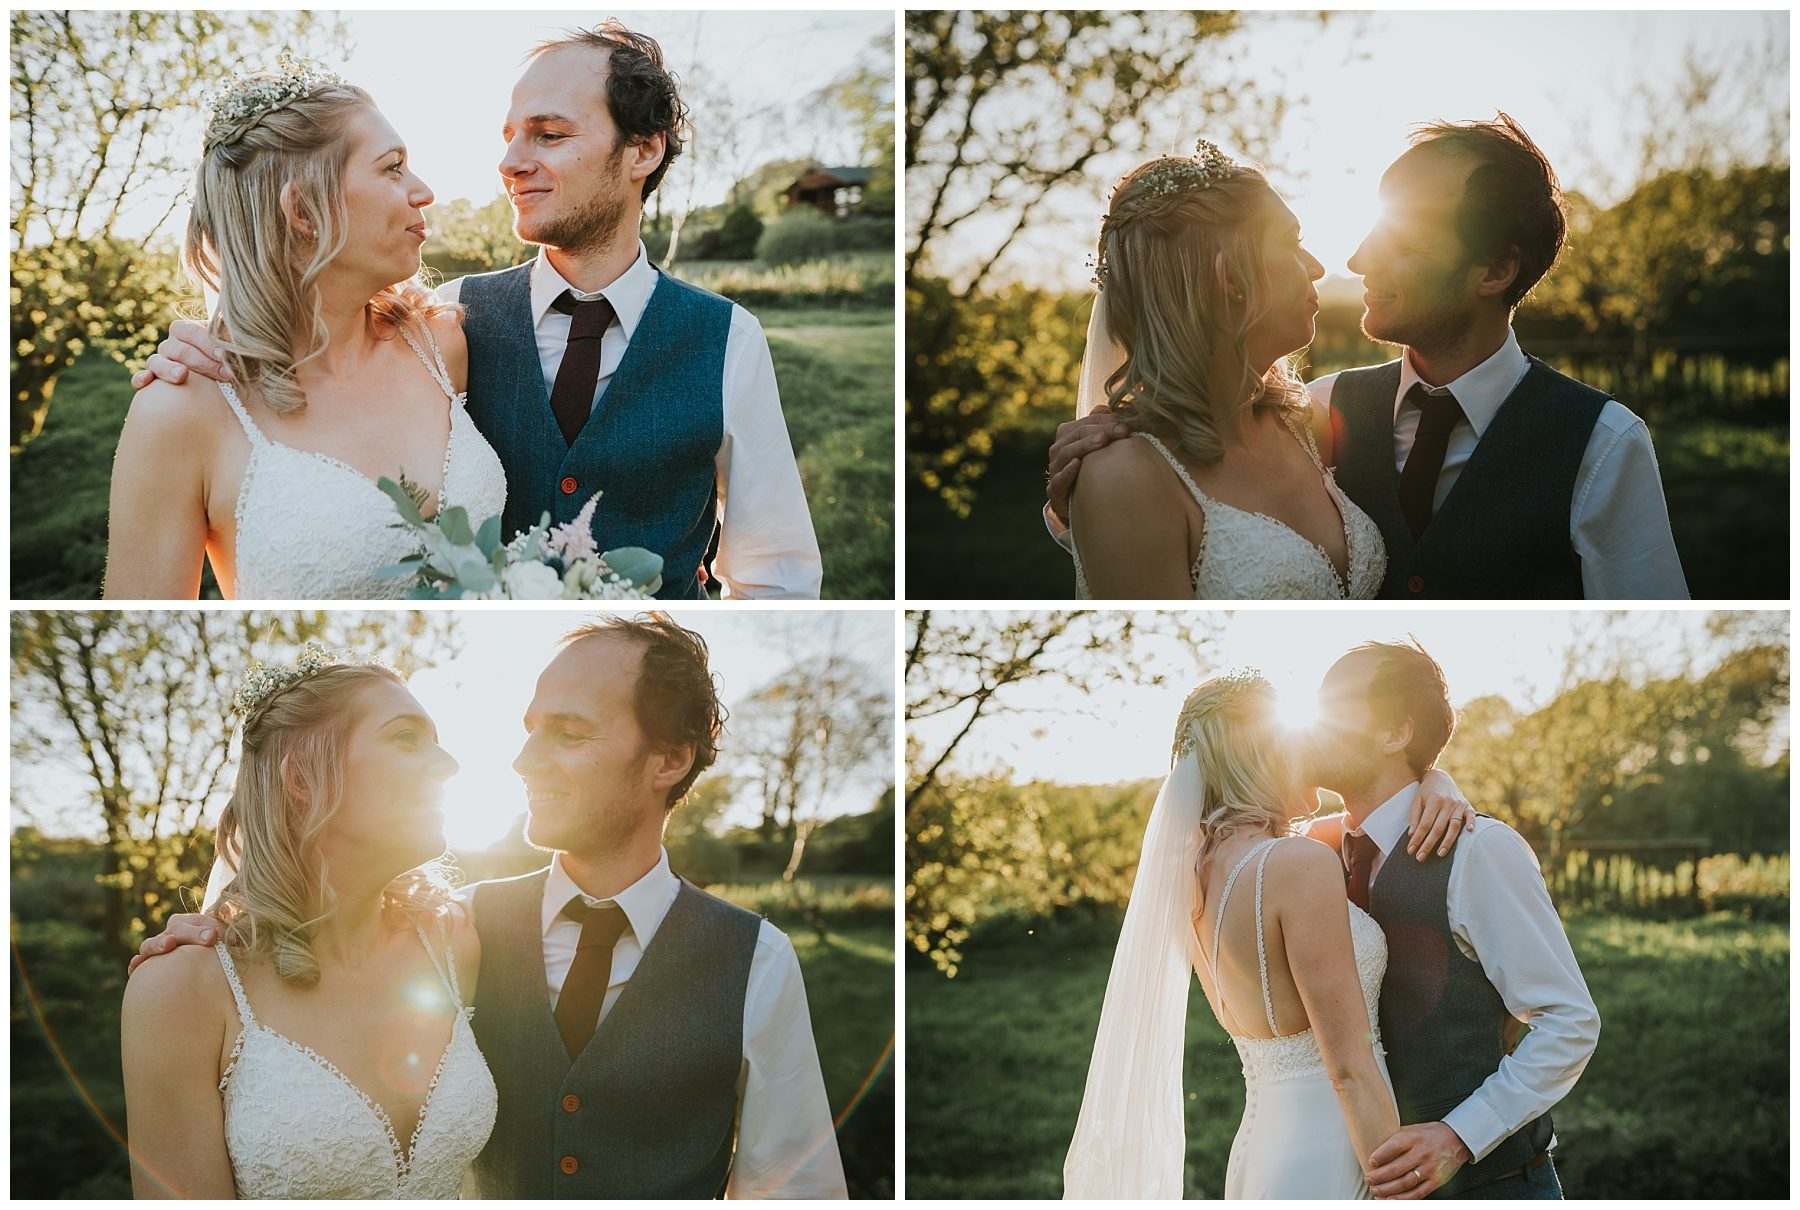 Ta mill sunset wedding photographer cornwall